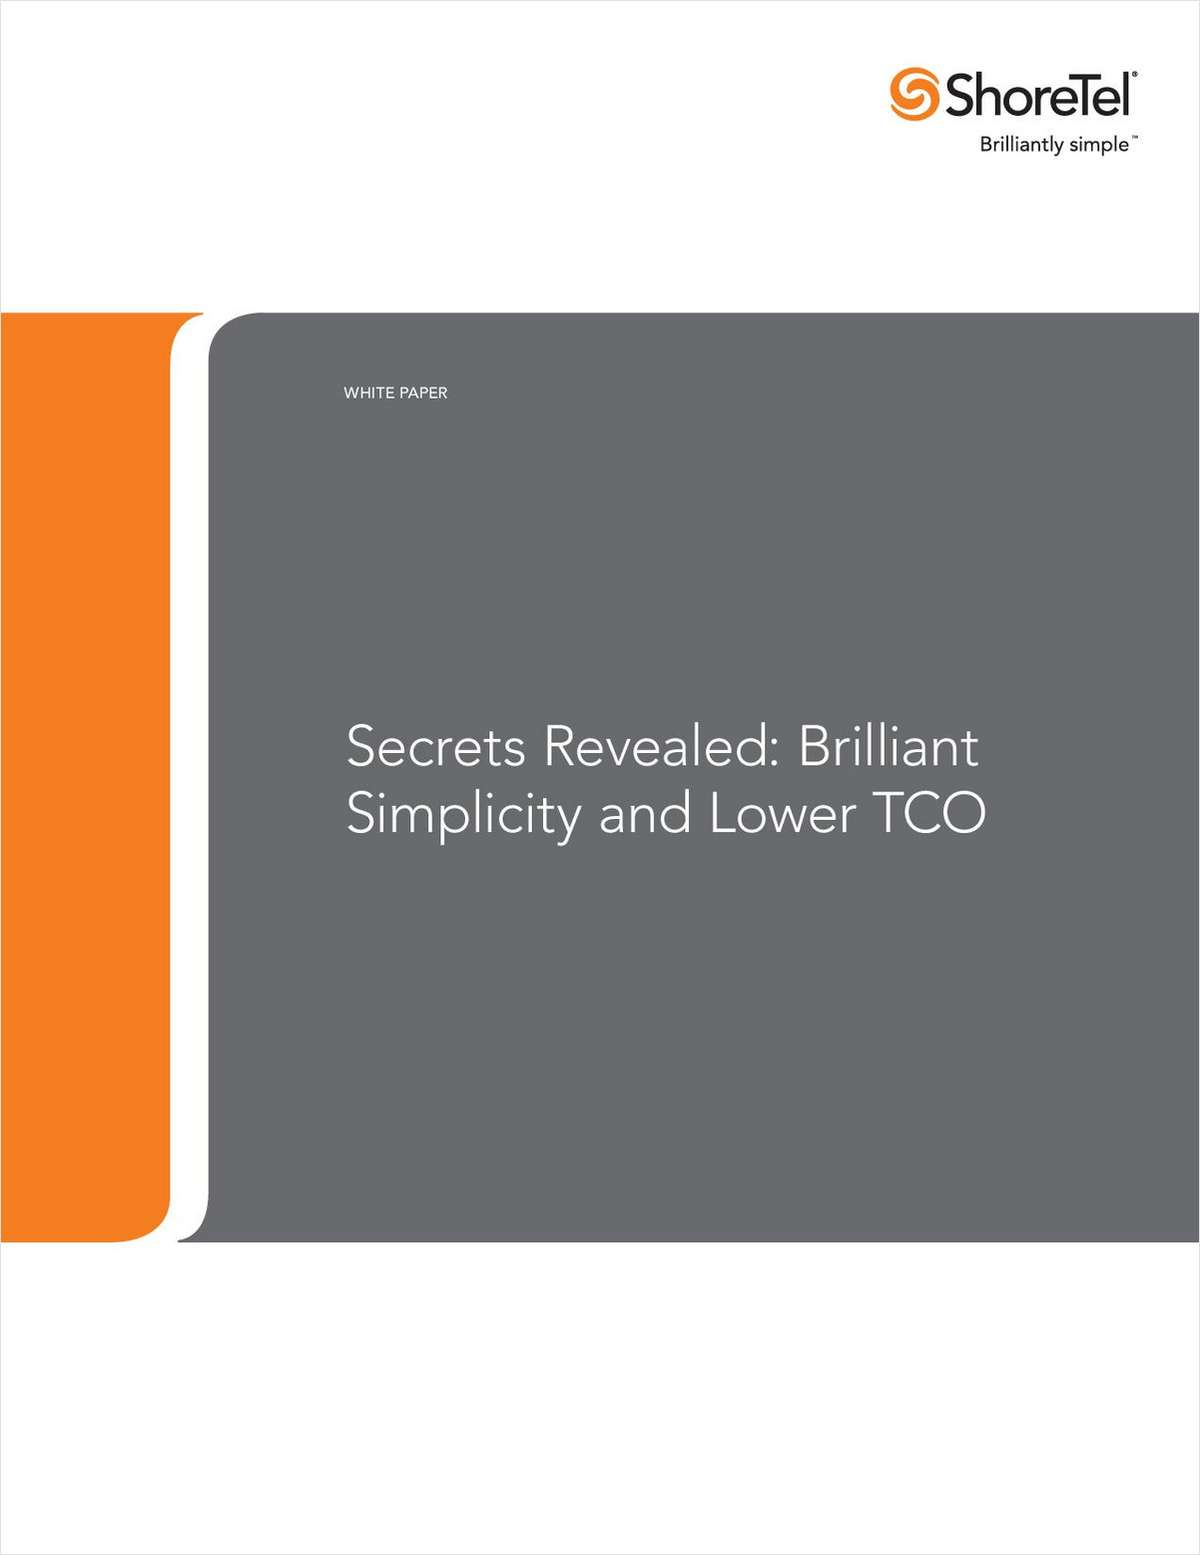 Secrets Revealed: Brilliant Simplicity and Lower Total Cost of Ownership